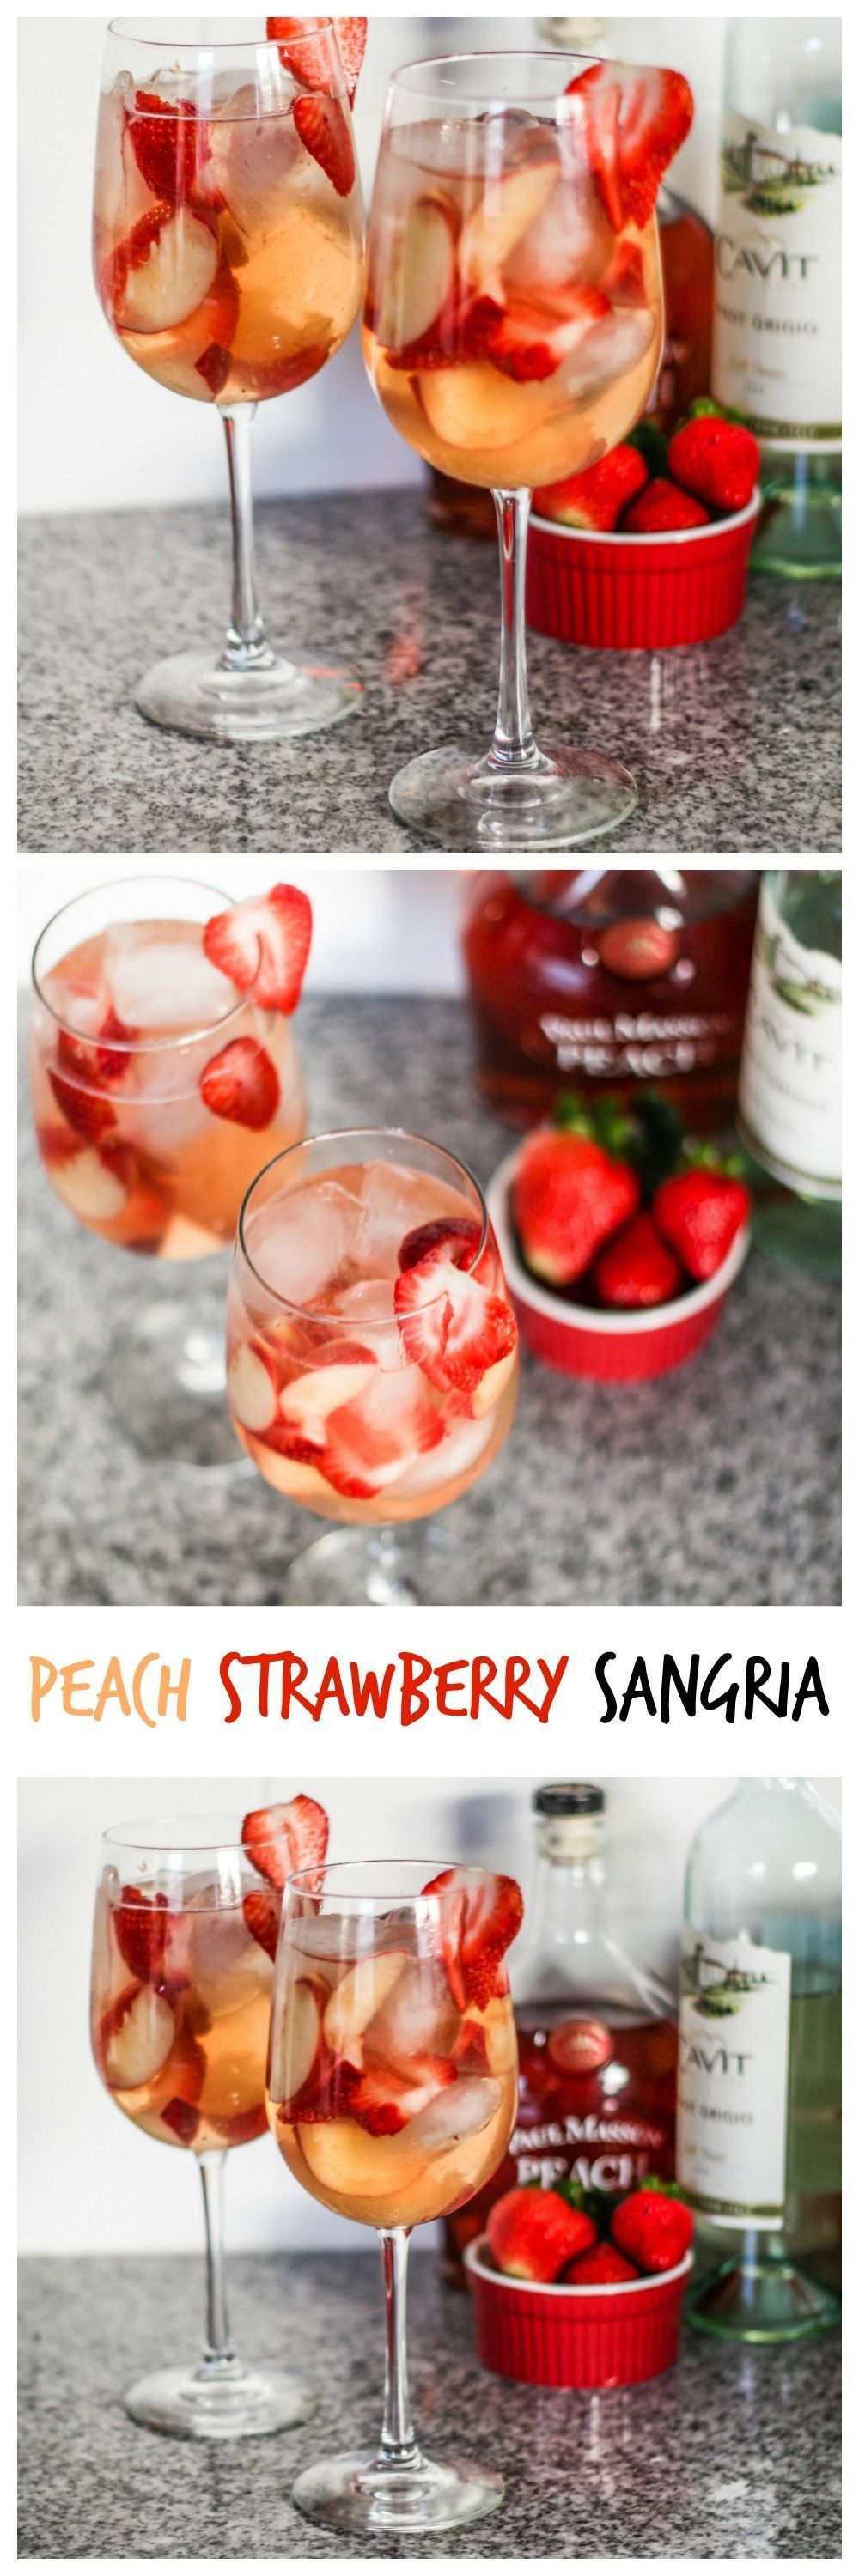 Peach Strawberry Sangria Perfect Summer Drink Summer Drinks Recipes Strawberry Sangria